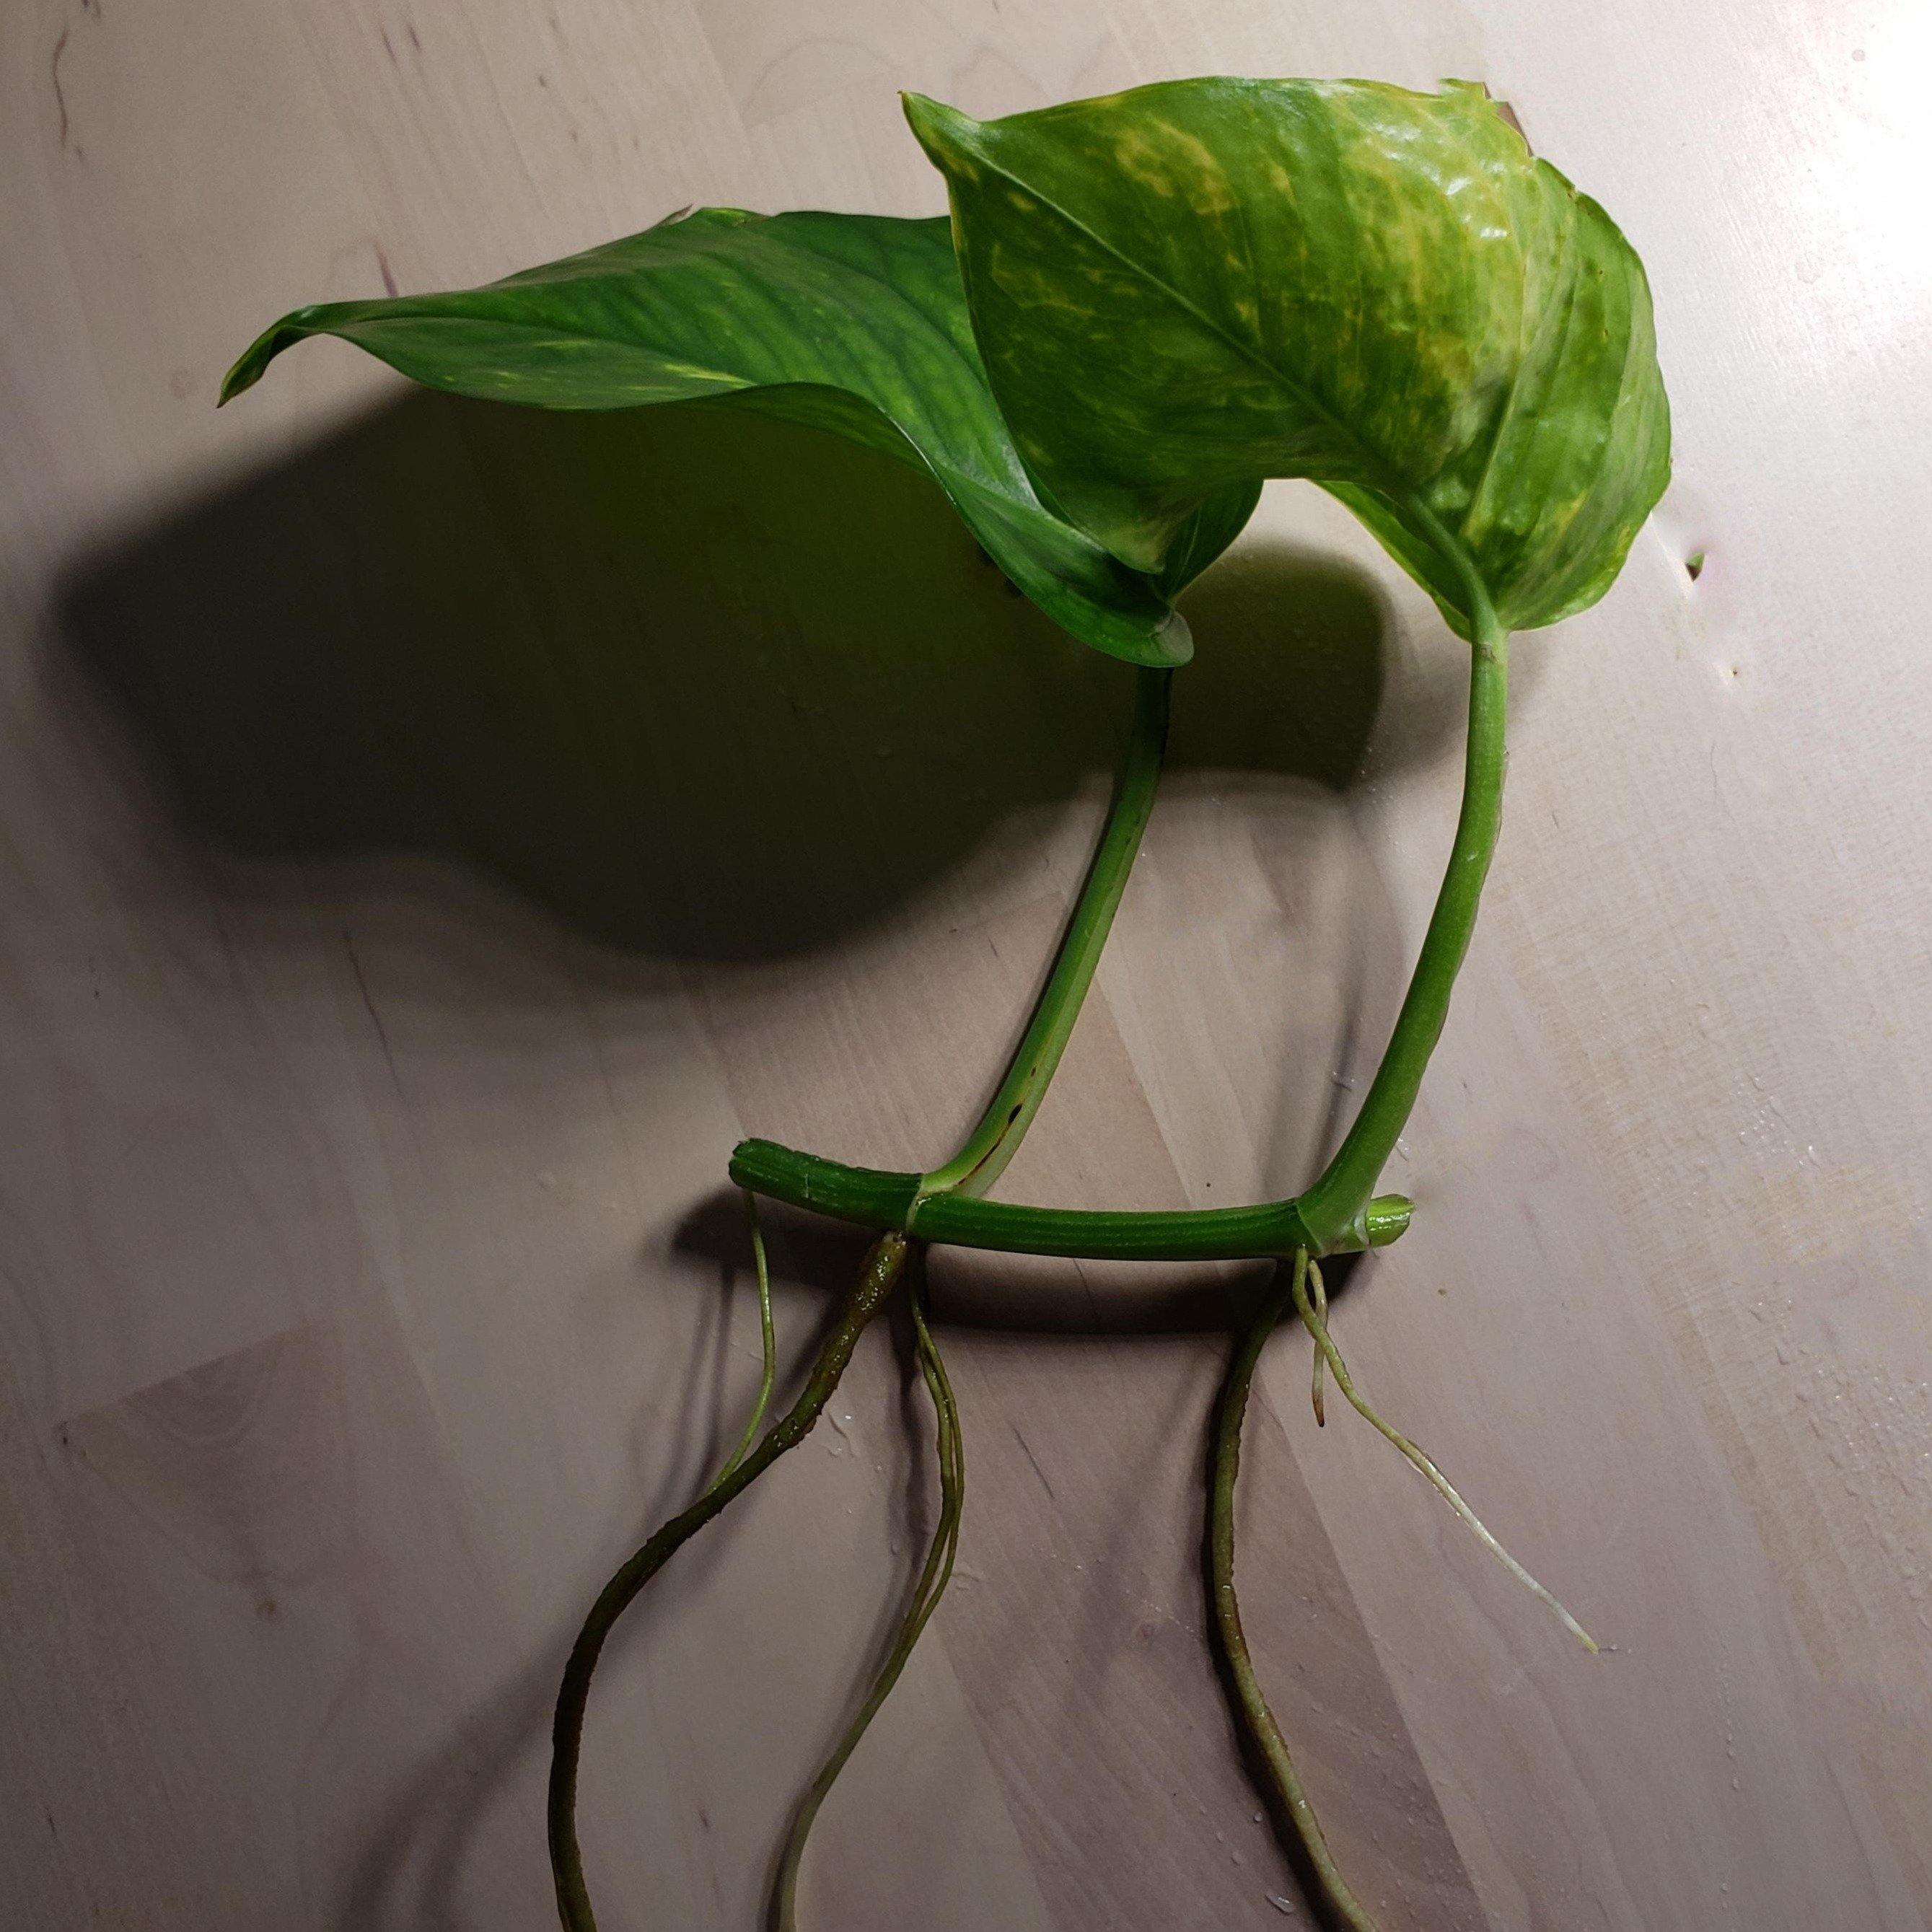 Golden Pothos Clipping (Semi-Aquatic) - Windy City Aquariums